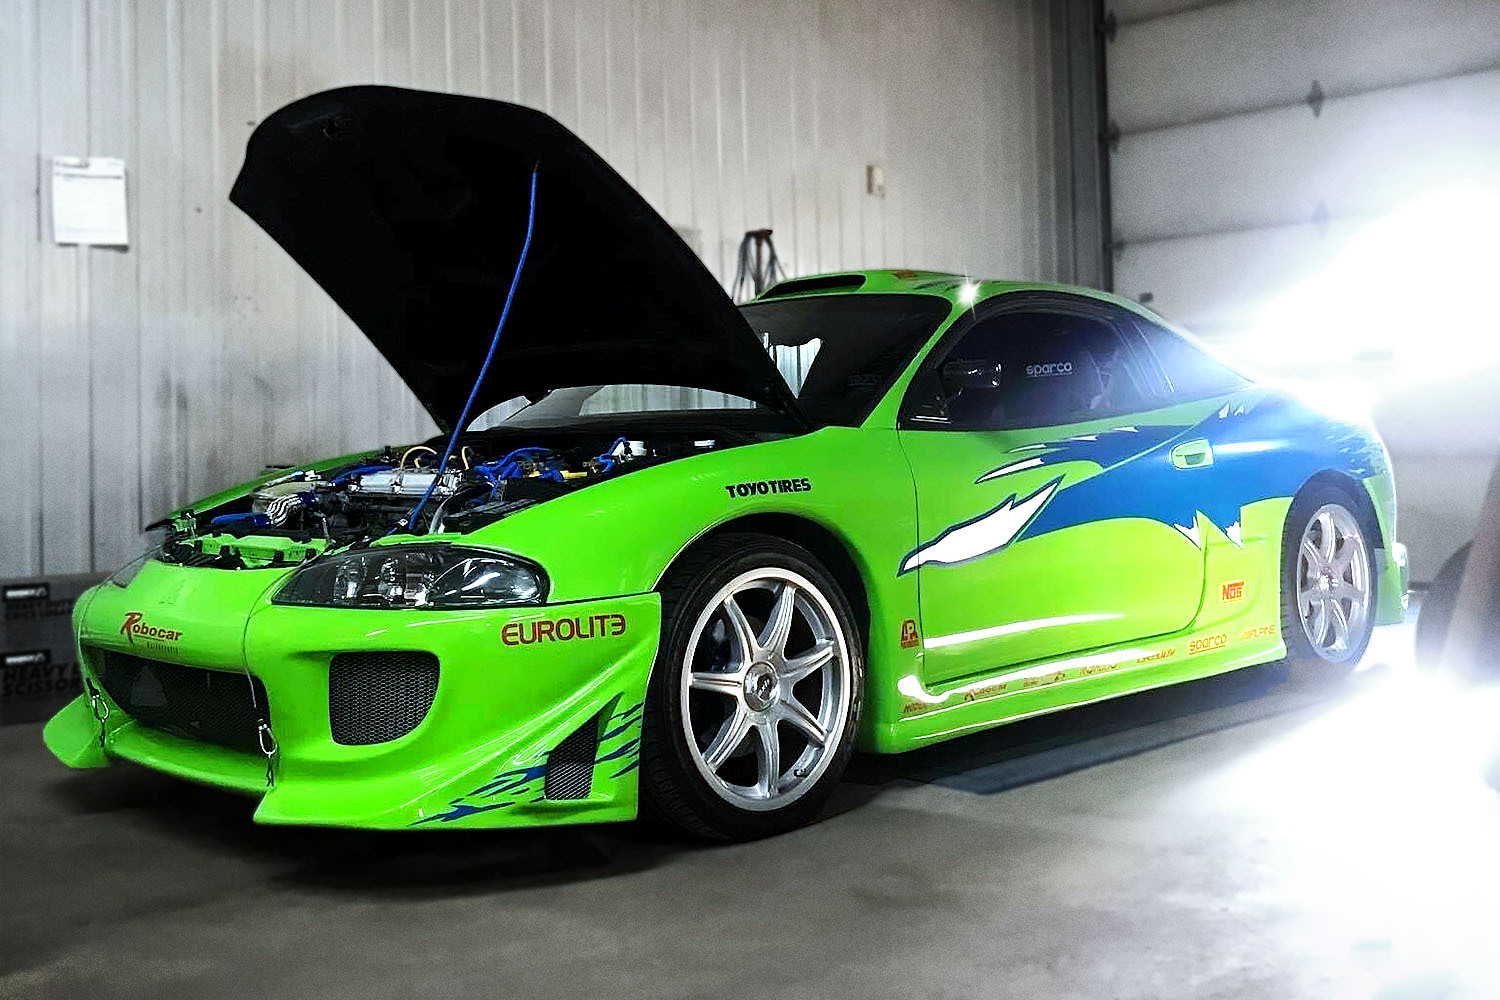 A replica of the green 1995 Mitsubishi Eclipse Paul Walker driver in the first Fast and Furious movie, this one built by Dominic Dubreuil